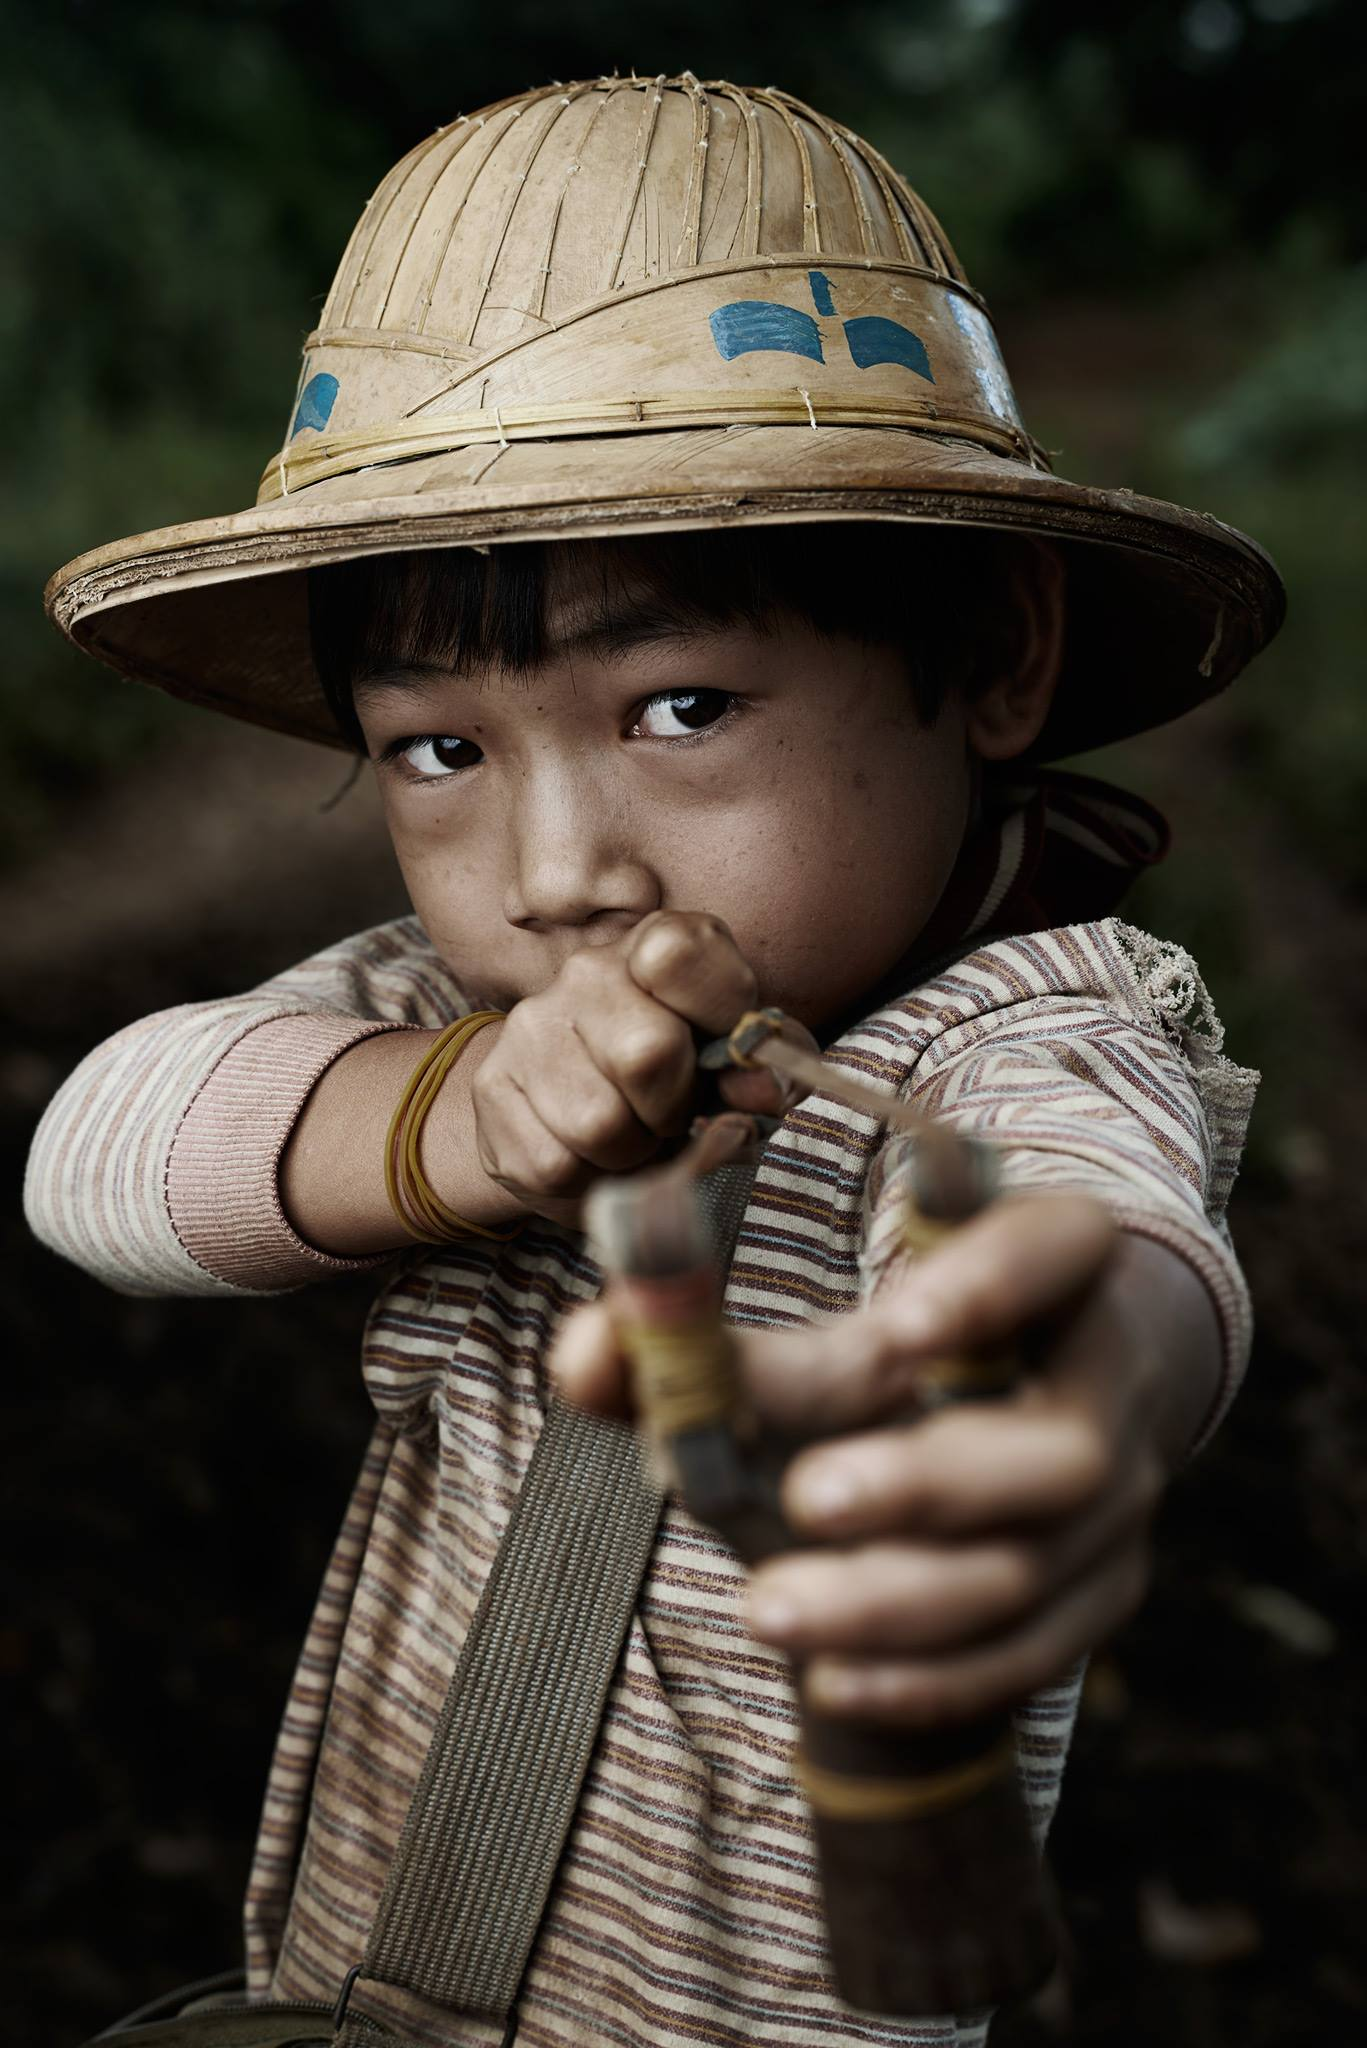 """This 8 years old burmese guy is a """"bird hunter"""". I had the opportunity to met him in my last trip to Burma in a remote region of the country. My guide was the translator. The guy explained us that he spend his life hunting birds in the morning to have something to eat every day. His parents consider a waste of time to send him to the school because he will not need that knowledge in his country in the future. - Victor Gonzalo"""